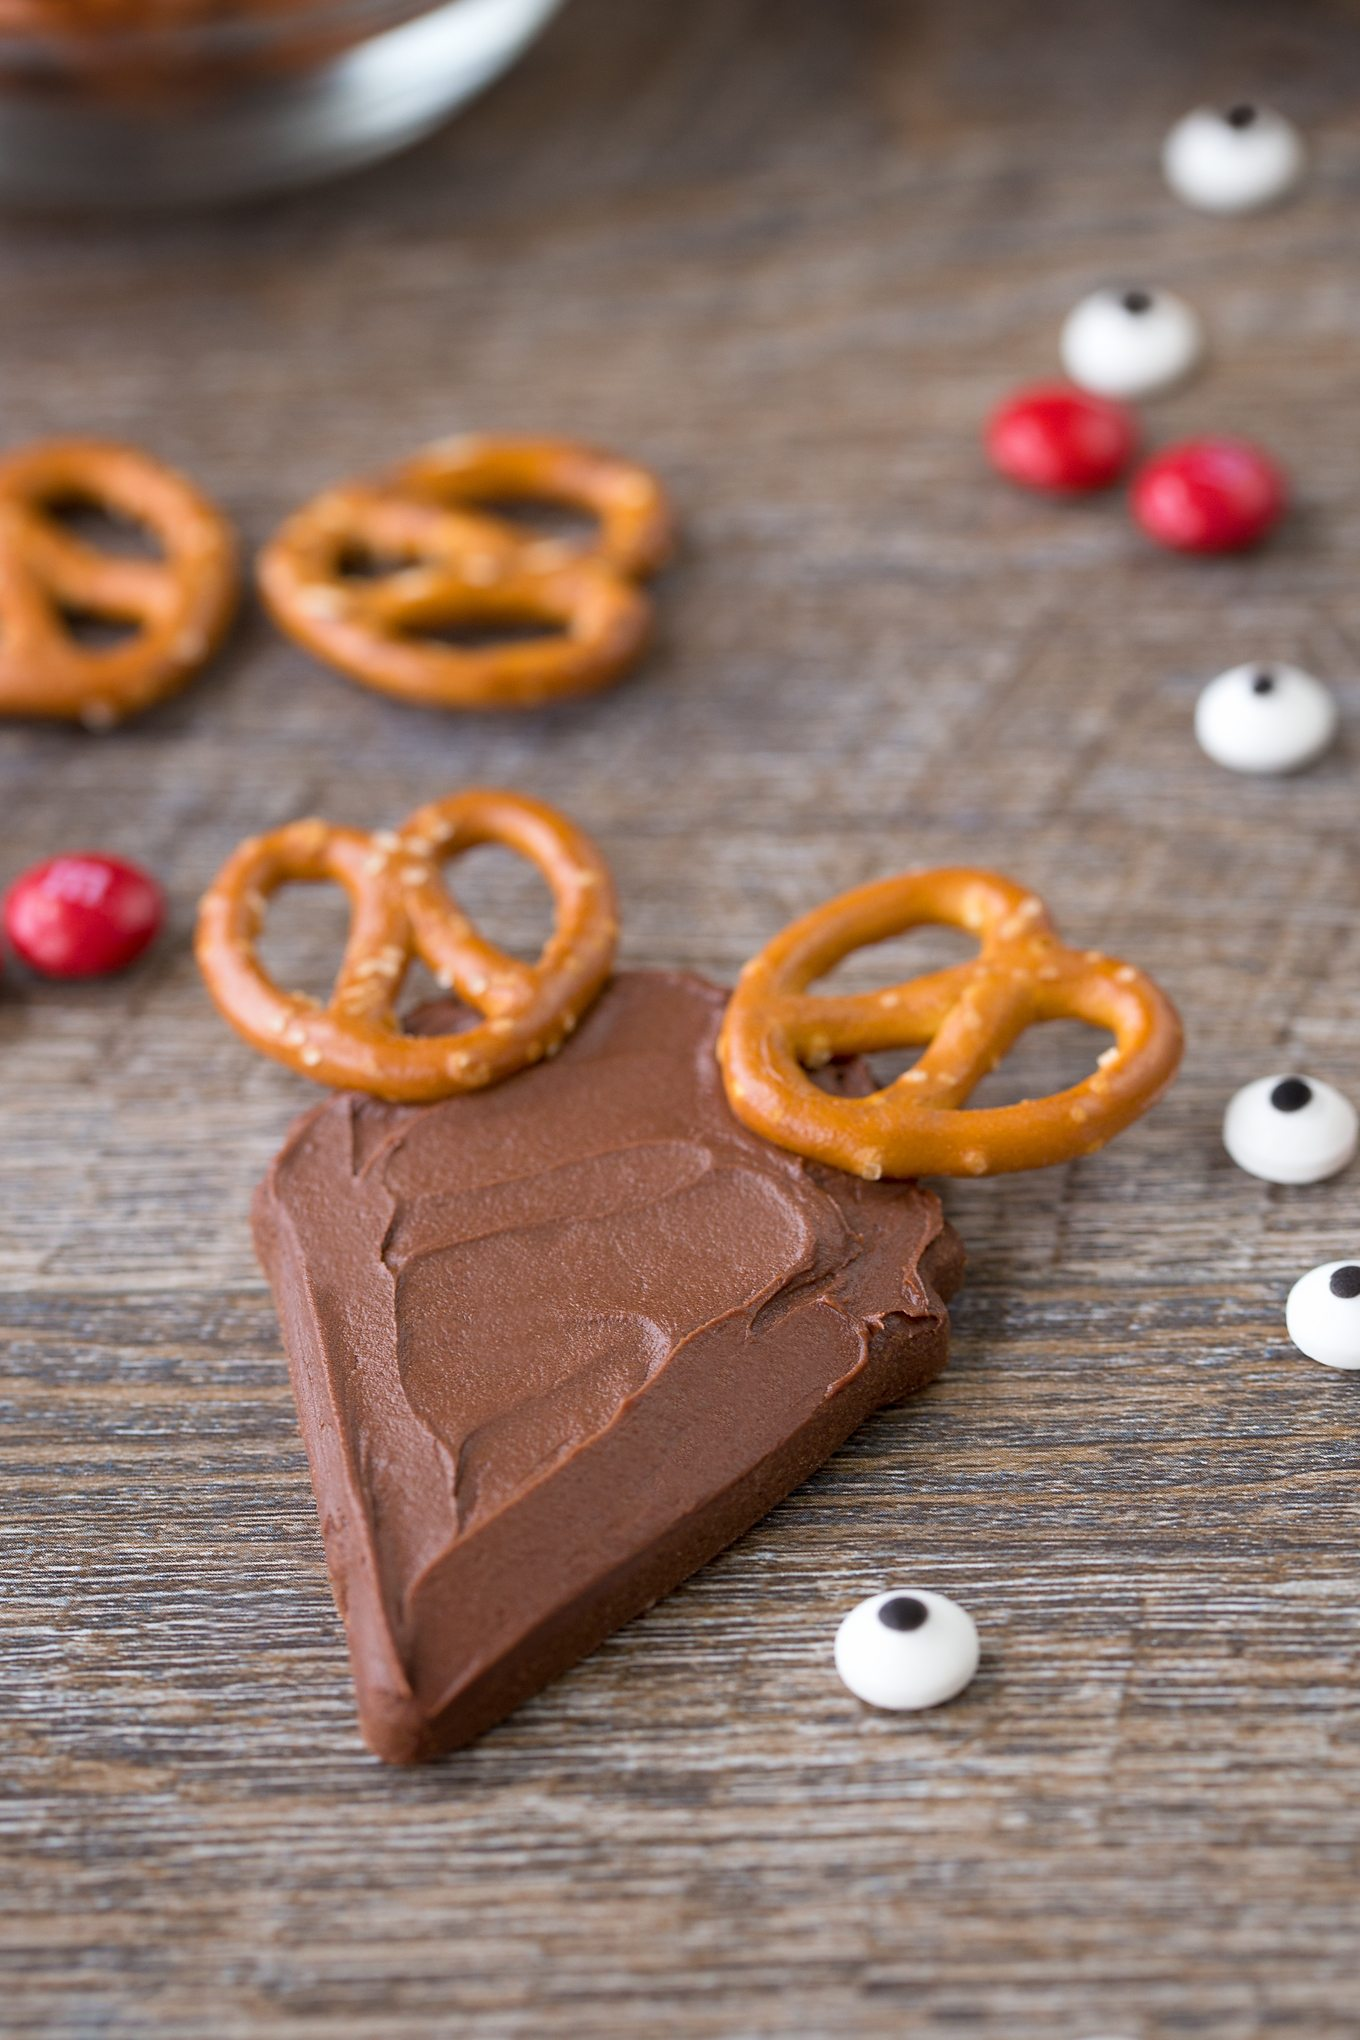 Chocolate Reindeer Cookies with Pretzel Antlers